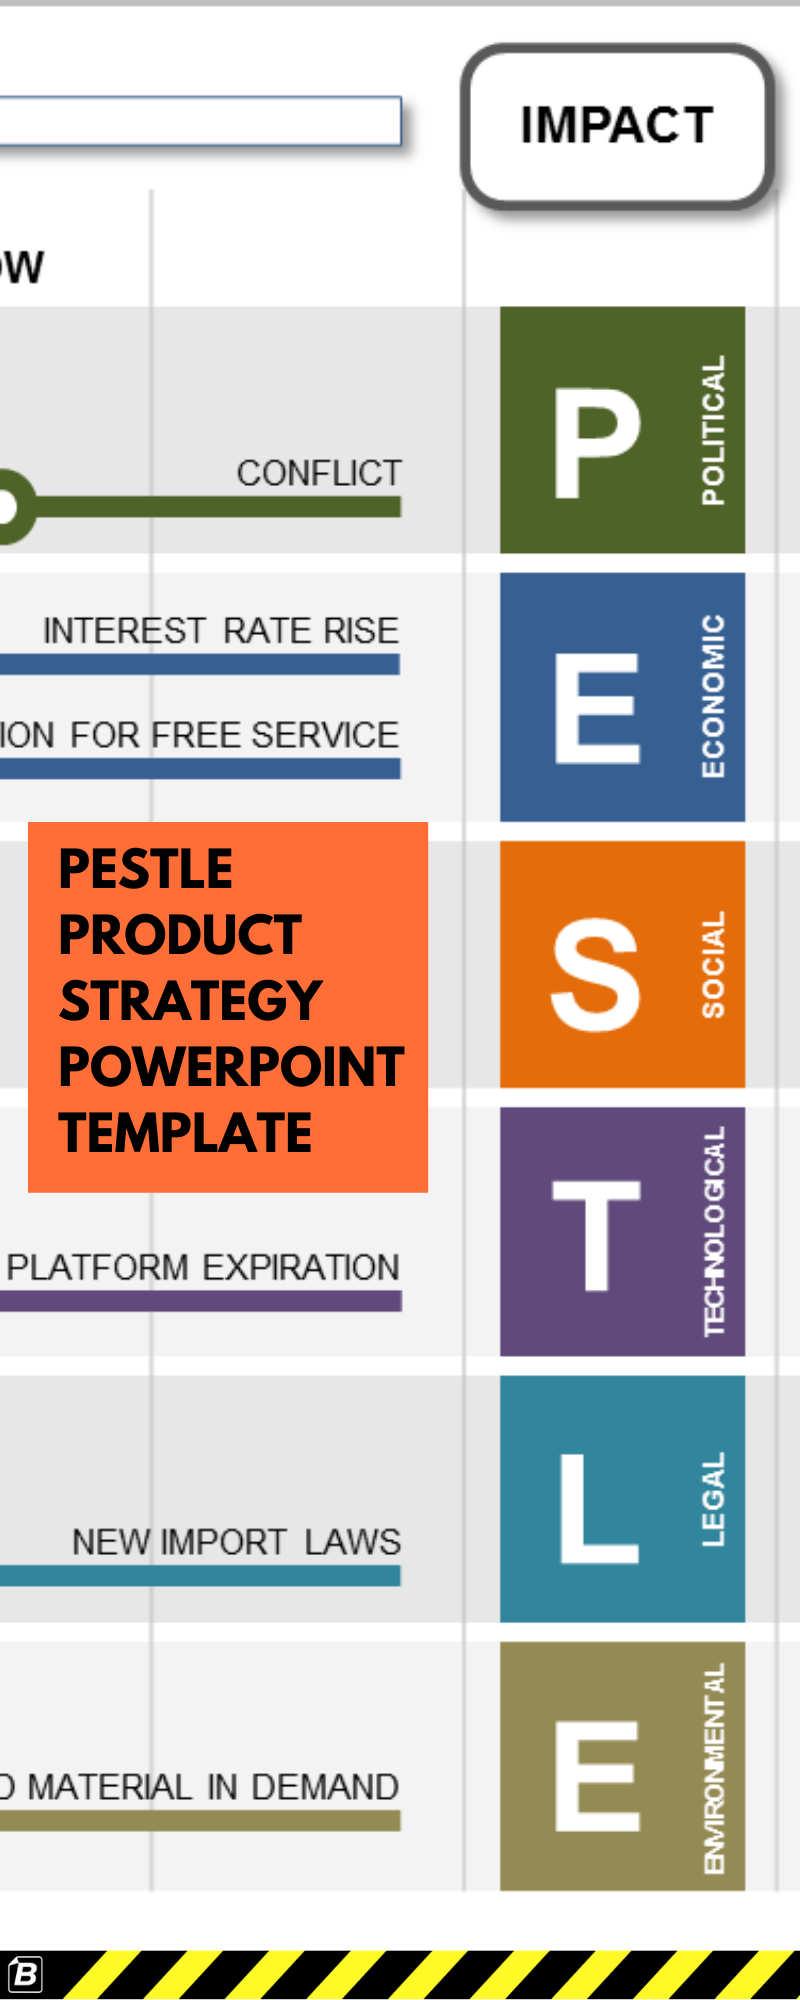 PESTLE Product Strategy Template (PowerPoint) imagens